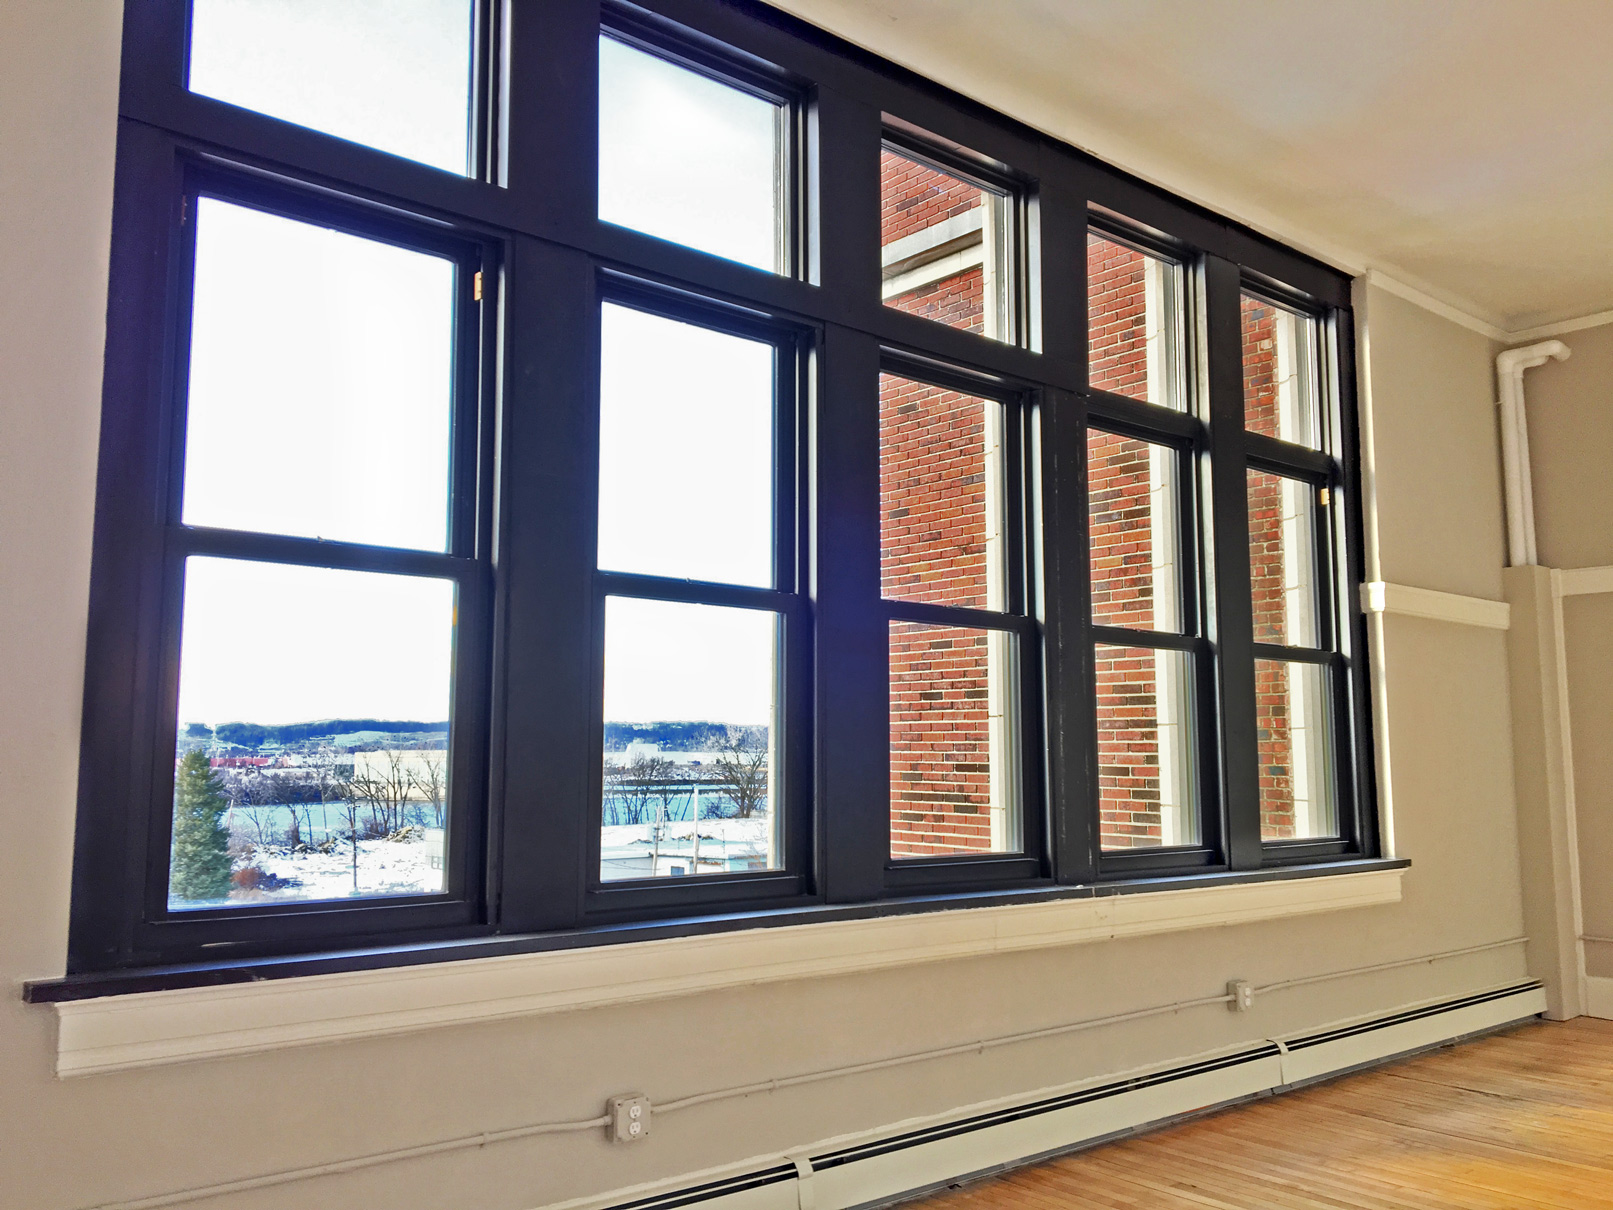 school one apartment windows